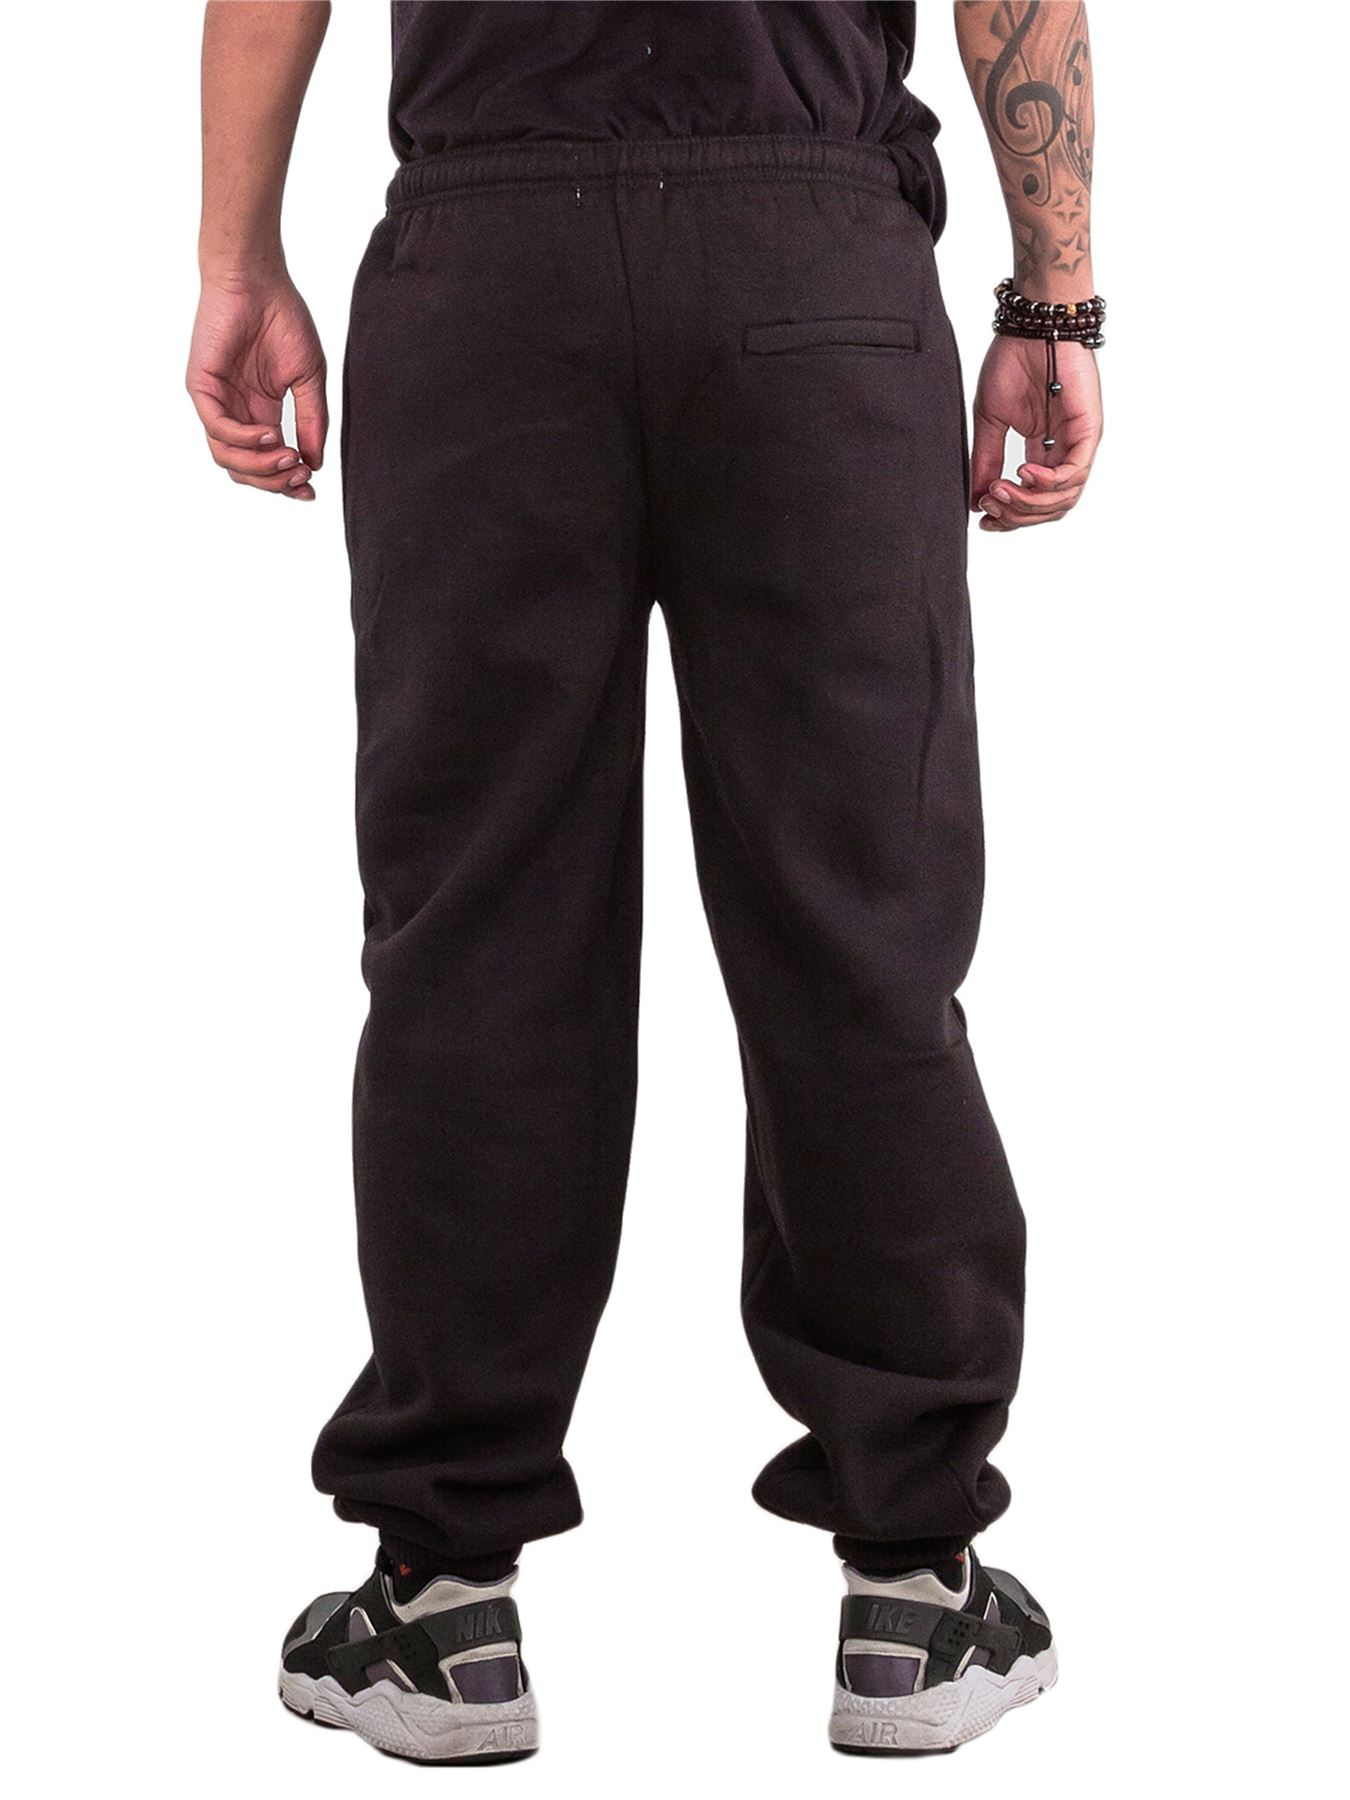 Mens-Fleece-Ribbed-Joggers-Tracksuit-Jogging-Bottom-Loose-Fit-Sweat-Pants-S-5XL thumbnail 4